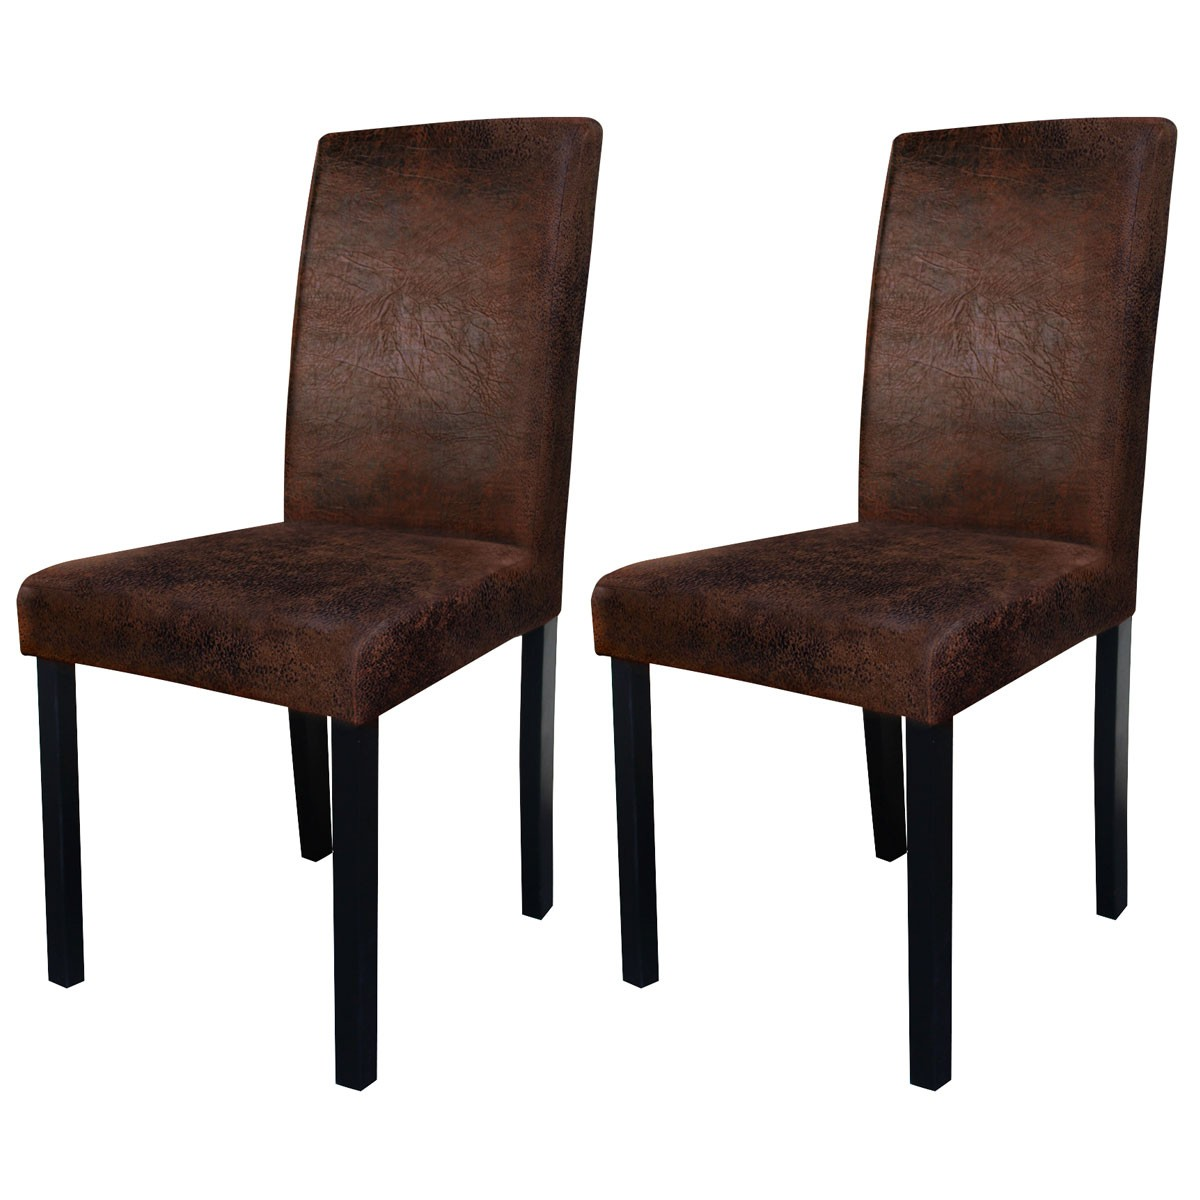 Lot De 6 Chaises Marron Chaise Havane Marron Vieilli Lot De 2